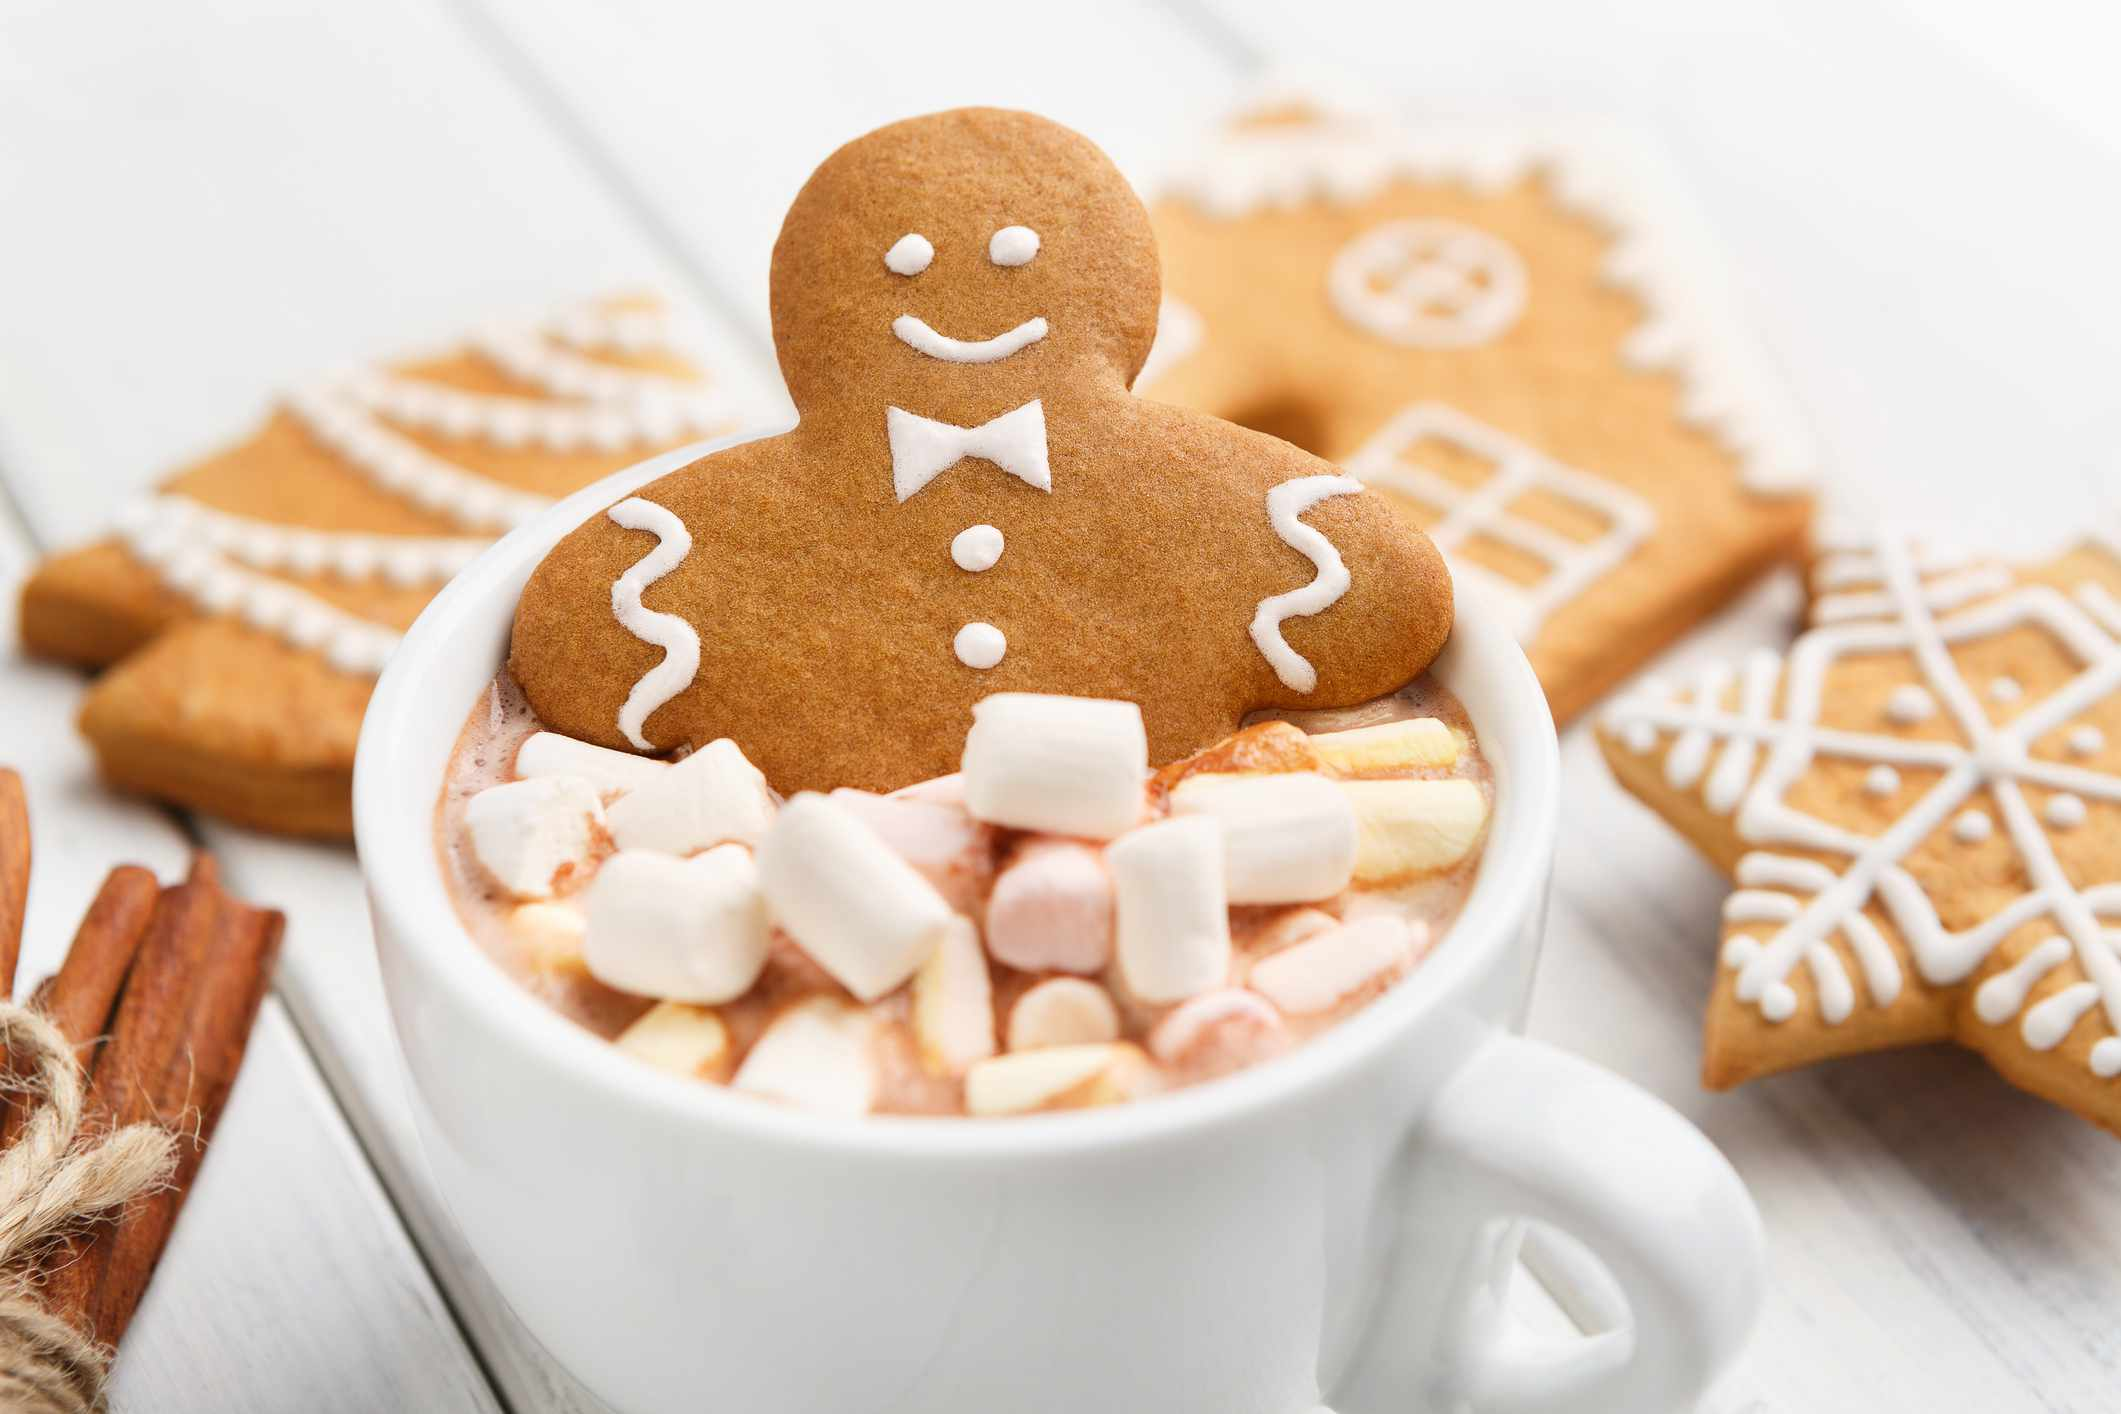 Cup of traditional hot chocolate with marshmallows and gingerbread